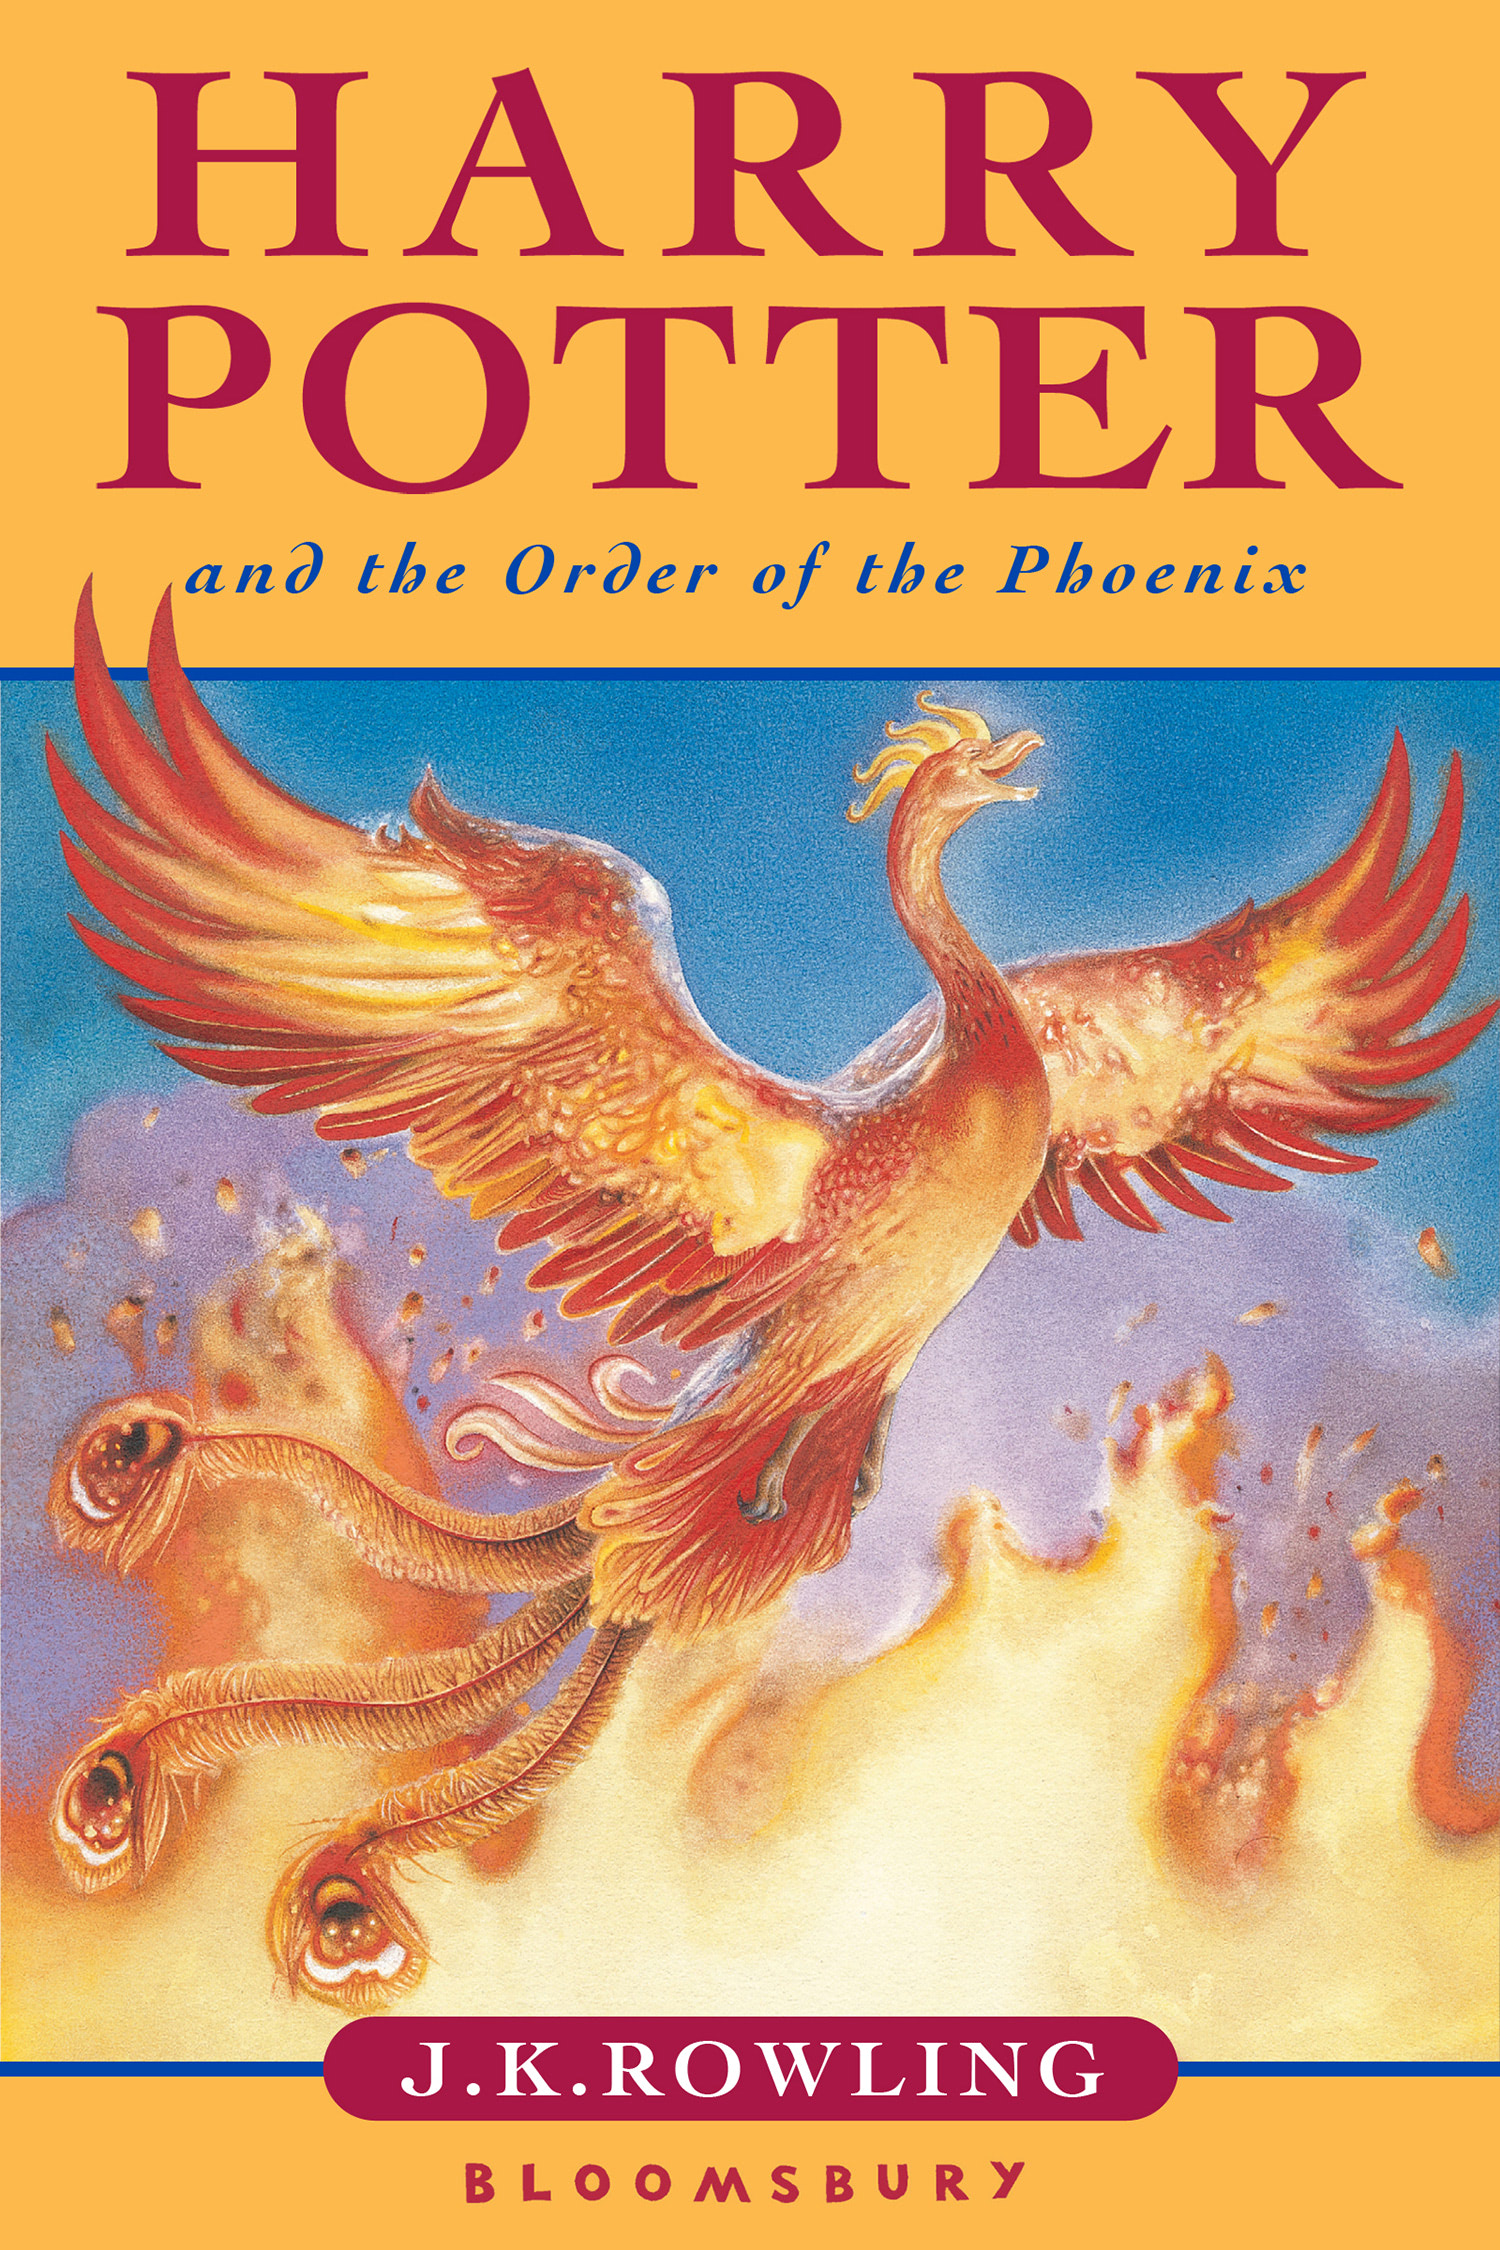 'Order of the Phoenix' UK children's edition